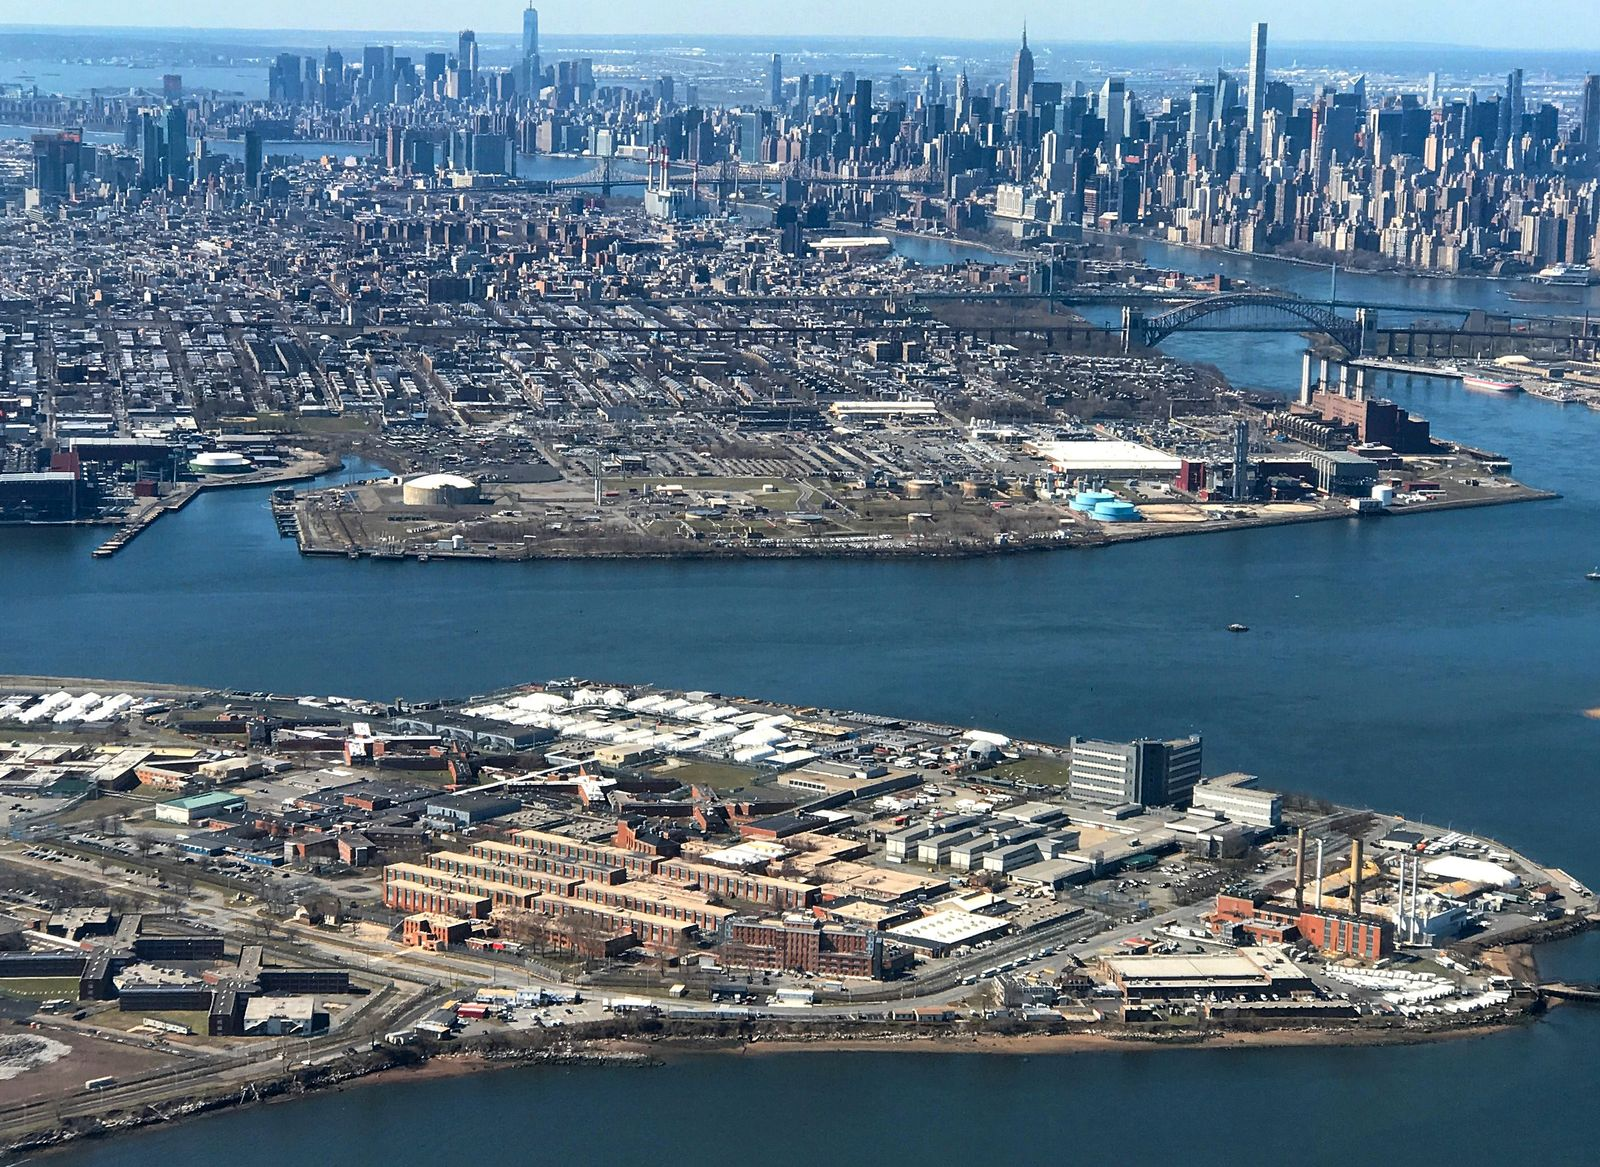 FILE PHOTO: The Rikers Island Prison complex is seen from an airplane in the Queens borough of New York City, New York